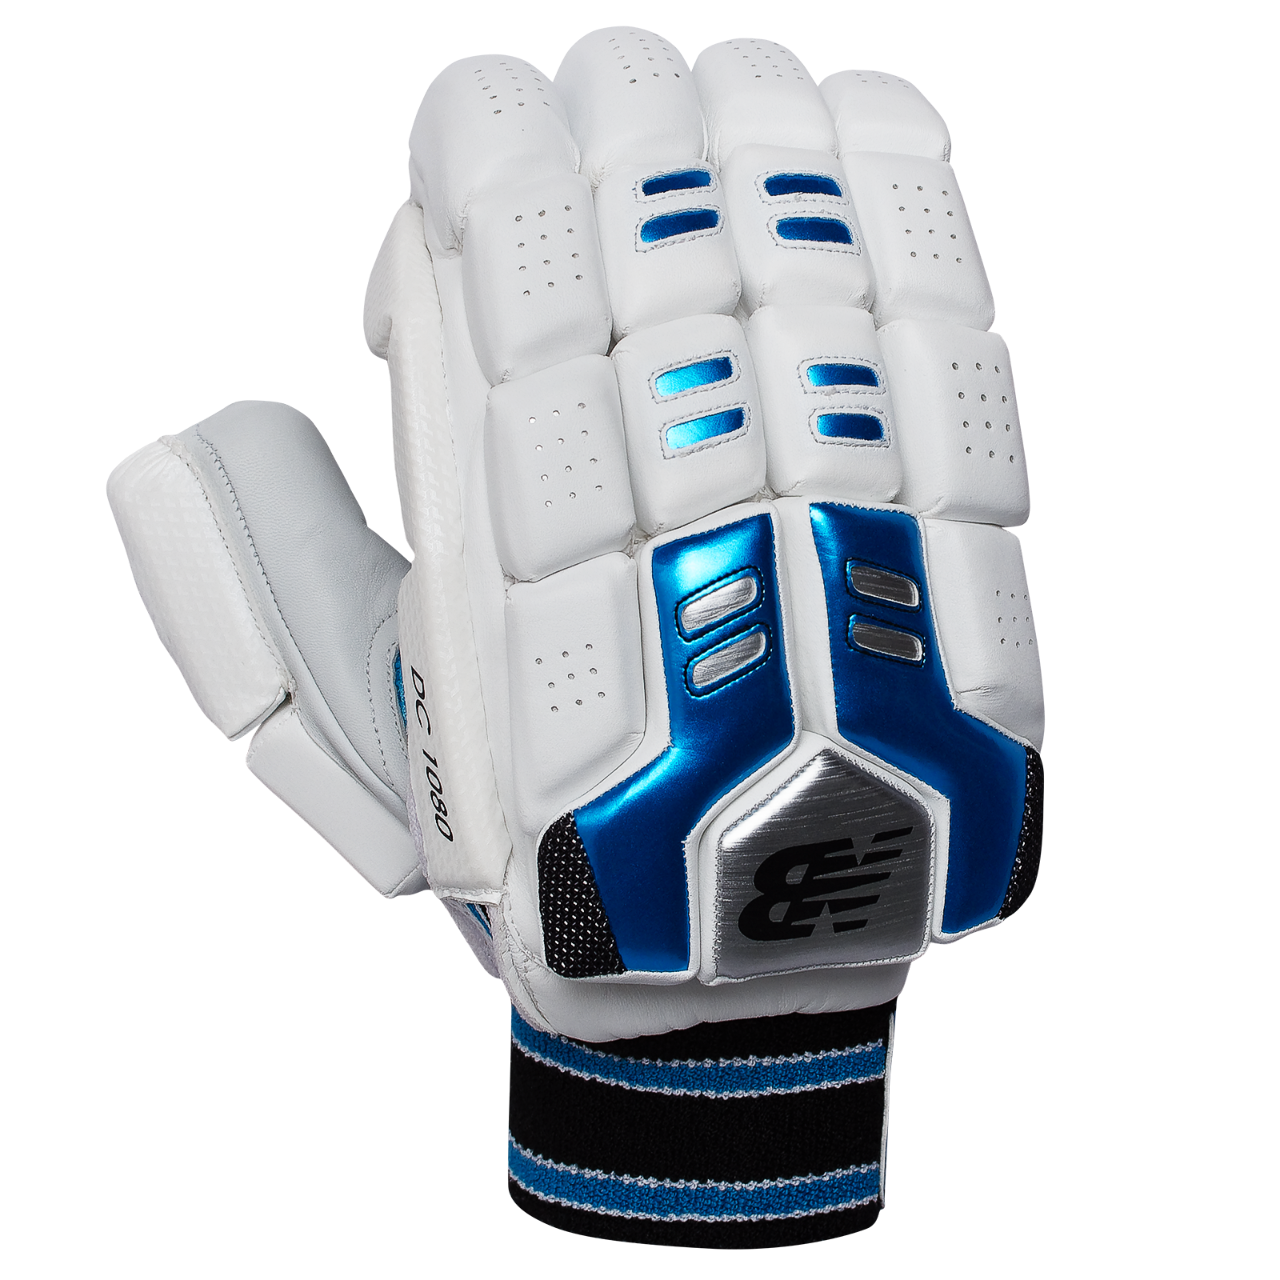 2021 New Balance DC 1080 Batting Gloves